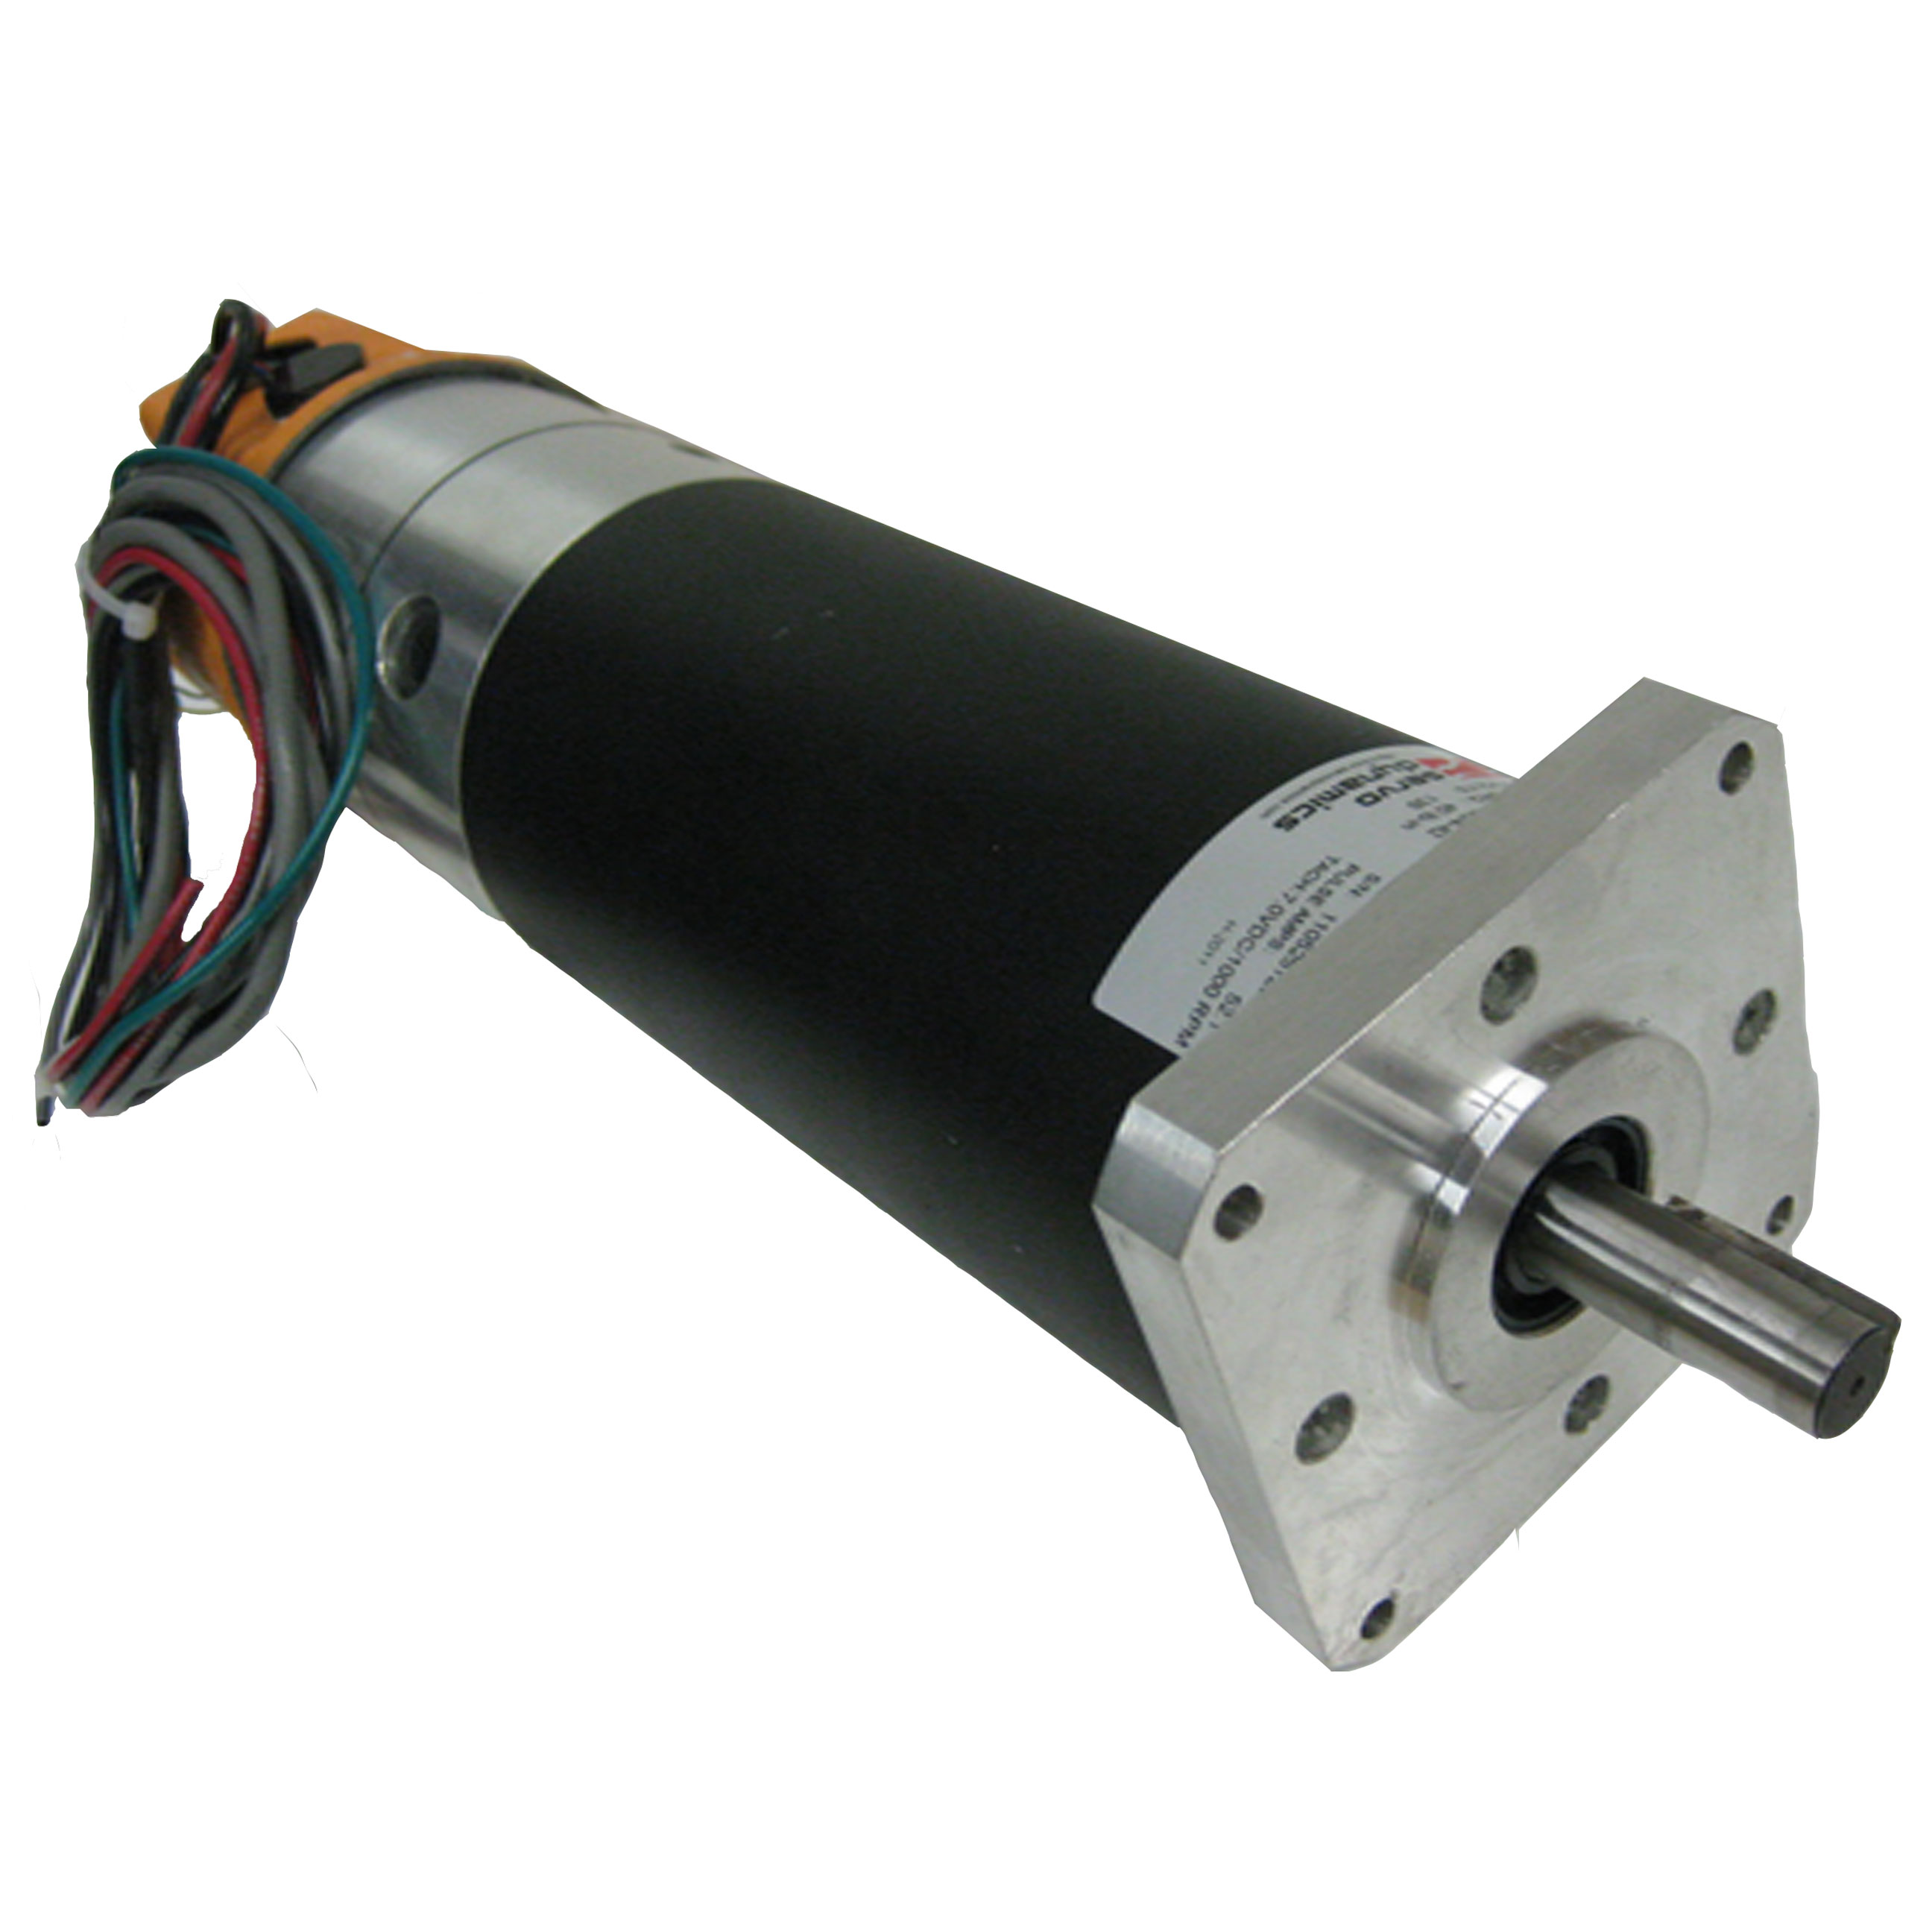 Servo dynamics mts30u4 42 dc brush servo motor cnc parts for Servo motors and drives inc